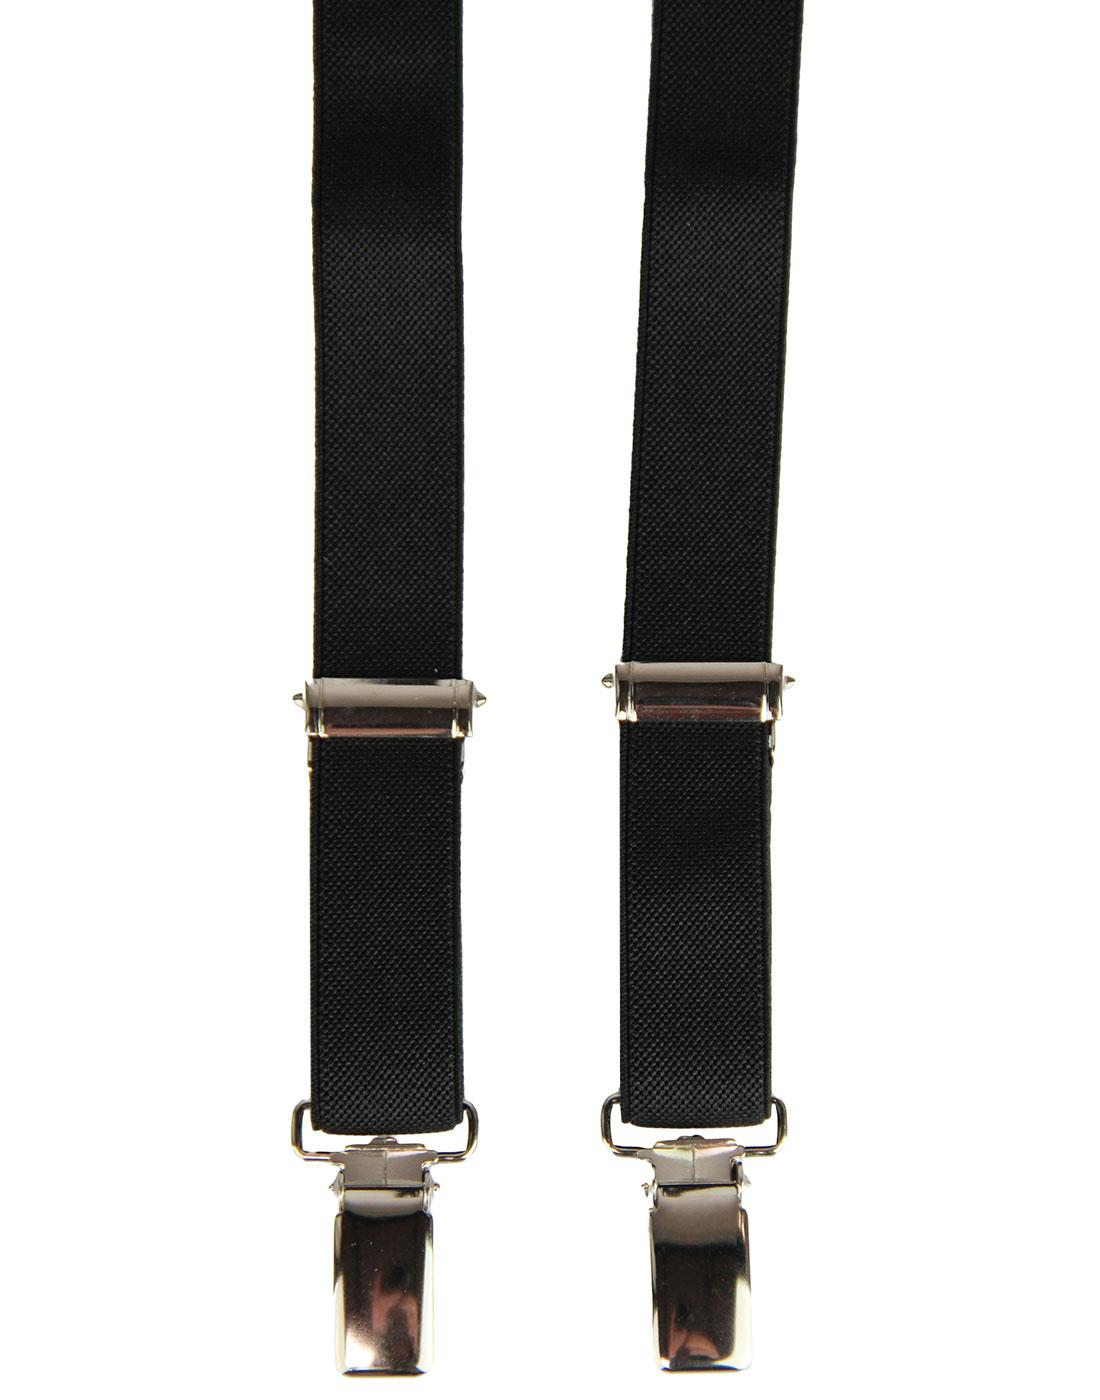 MADCAP ENGLAND Made in Britain Narrow Braces BLACK